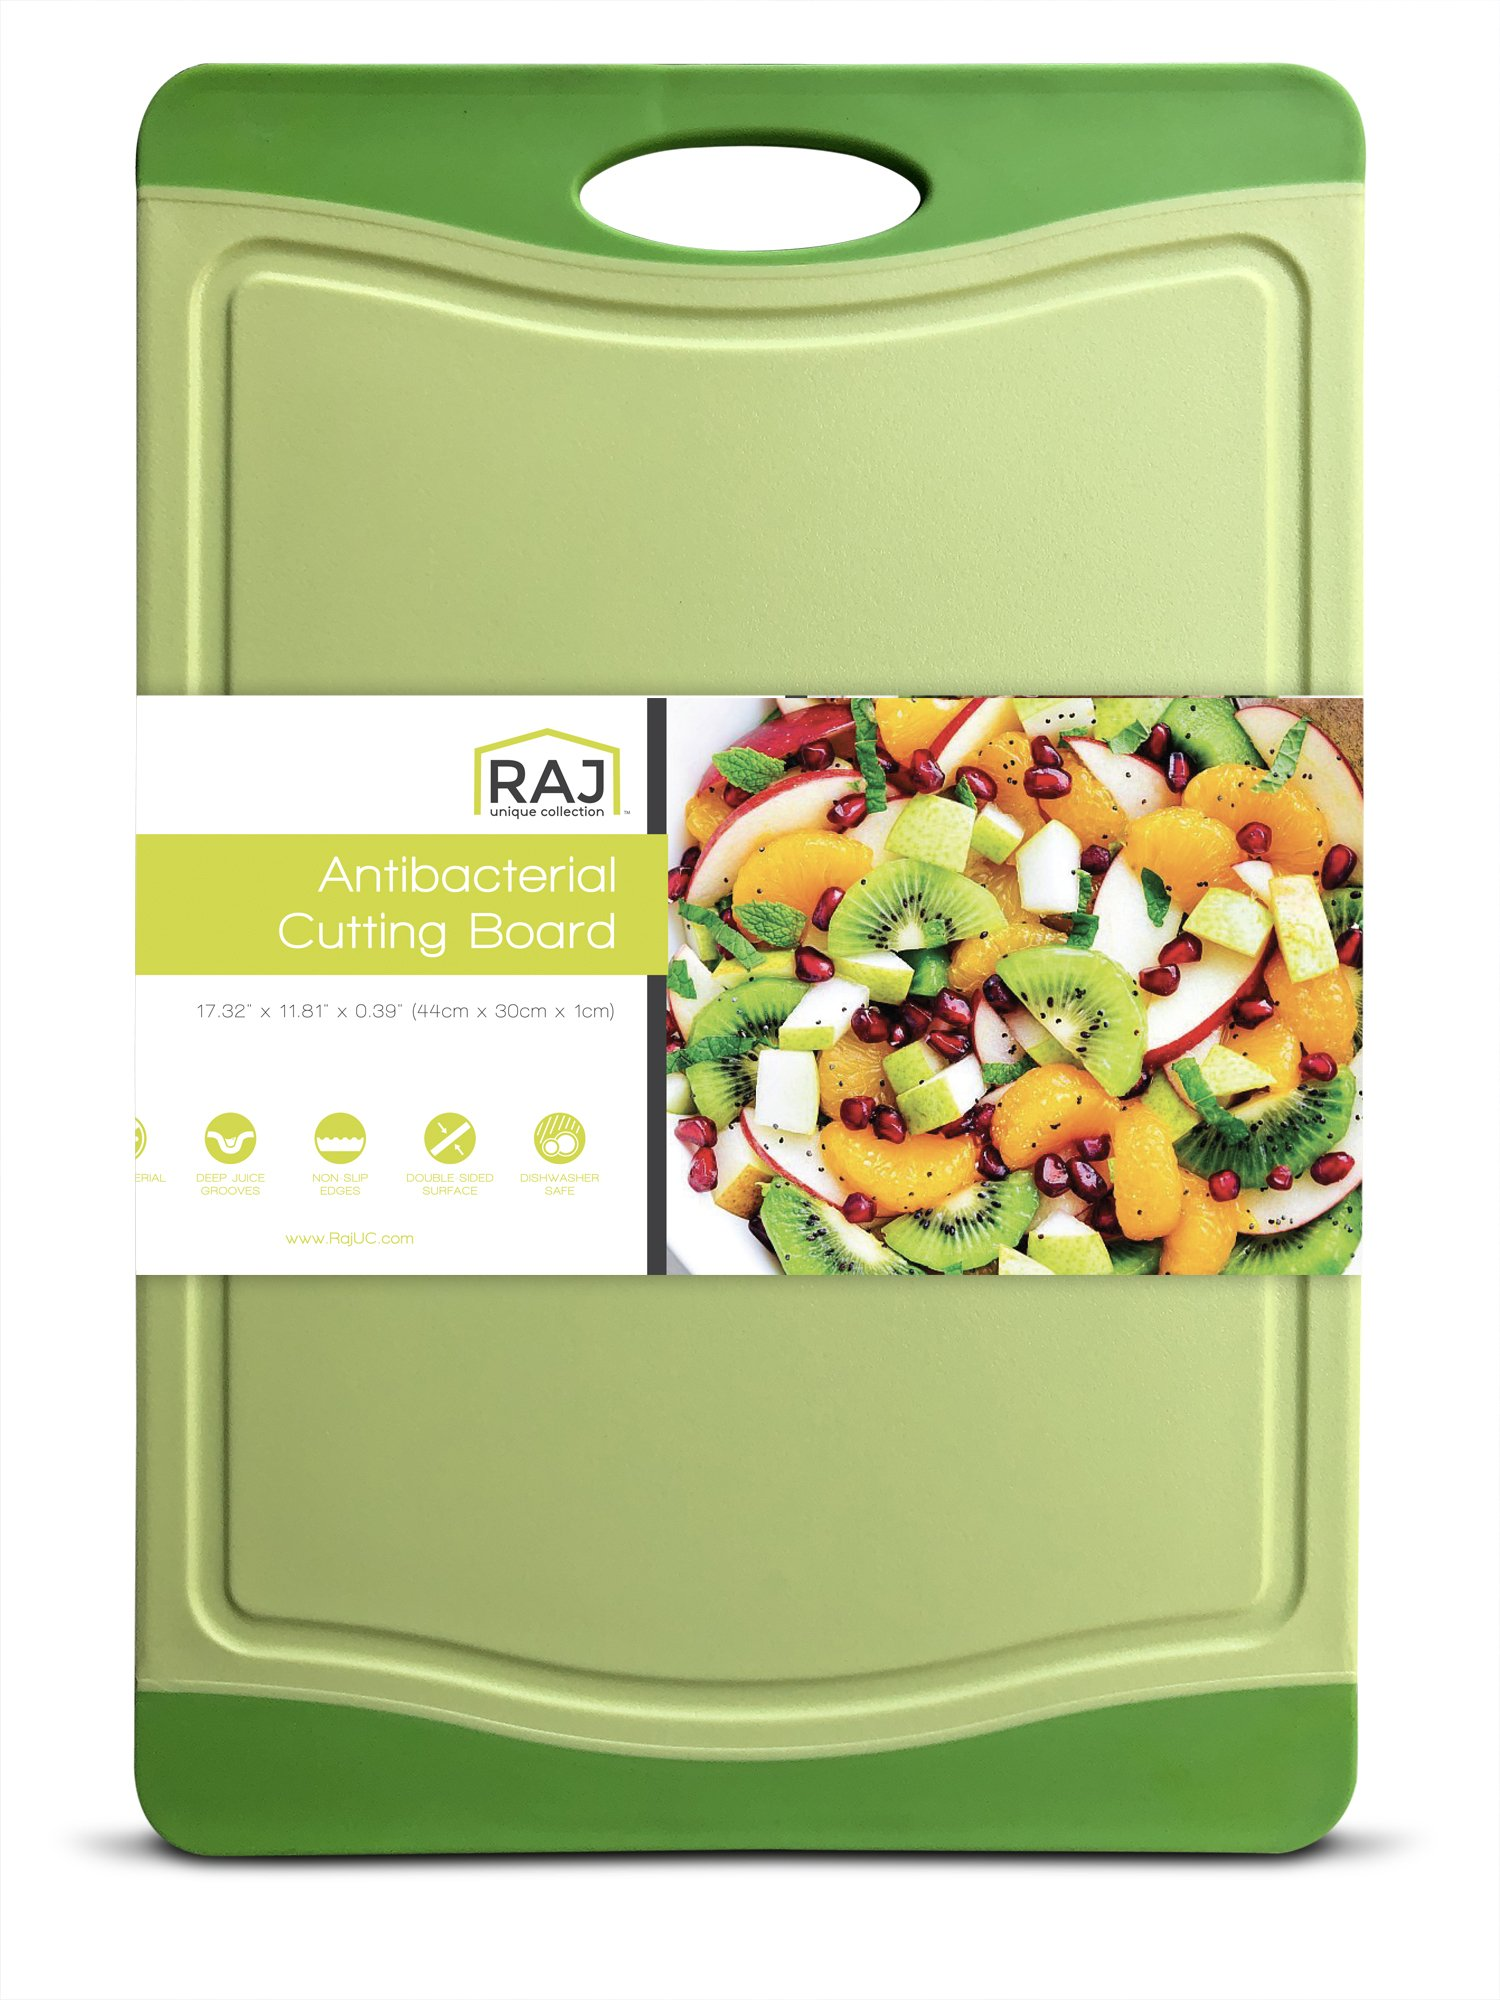 Raj Plastic Cutting Board Reversible Cutting board, Dishwasher Safe, Chopping Boards, Juice Groove, Large Handle, Non-Slip, BPA Free, FDA Approved (18'', White/Green)